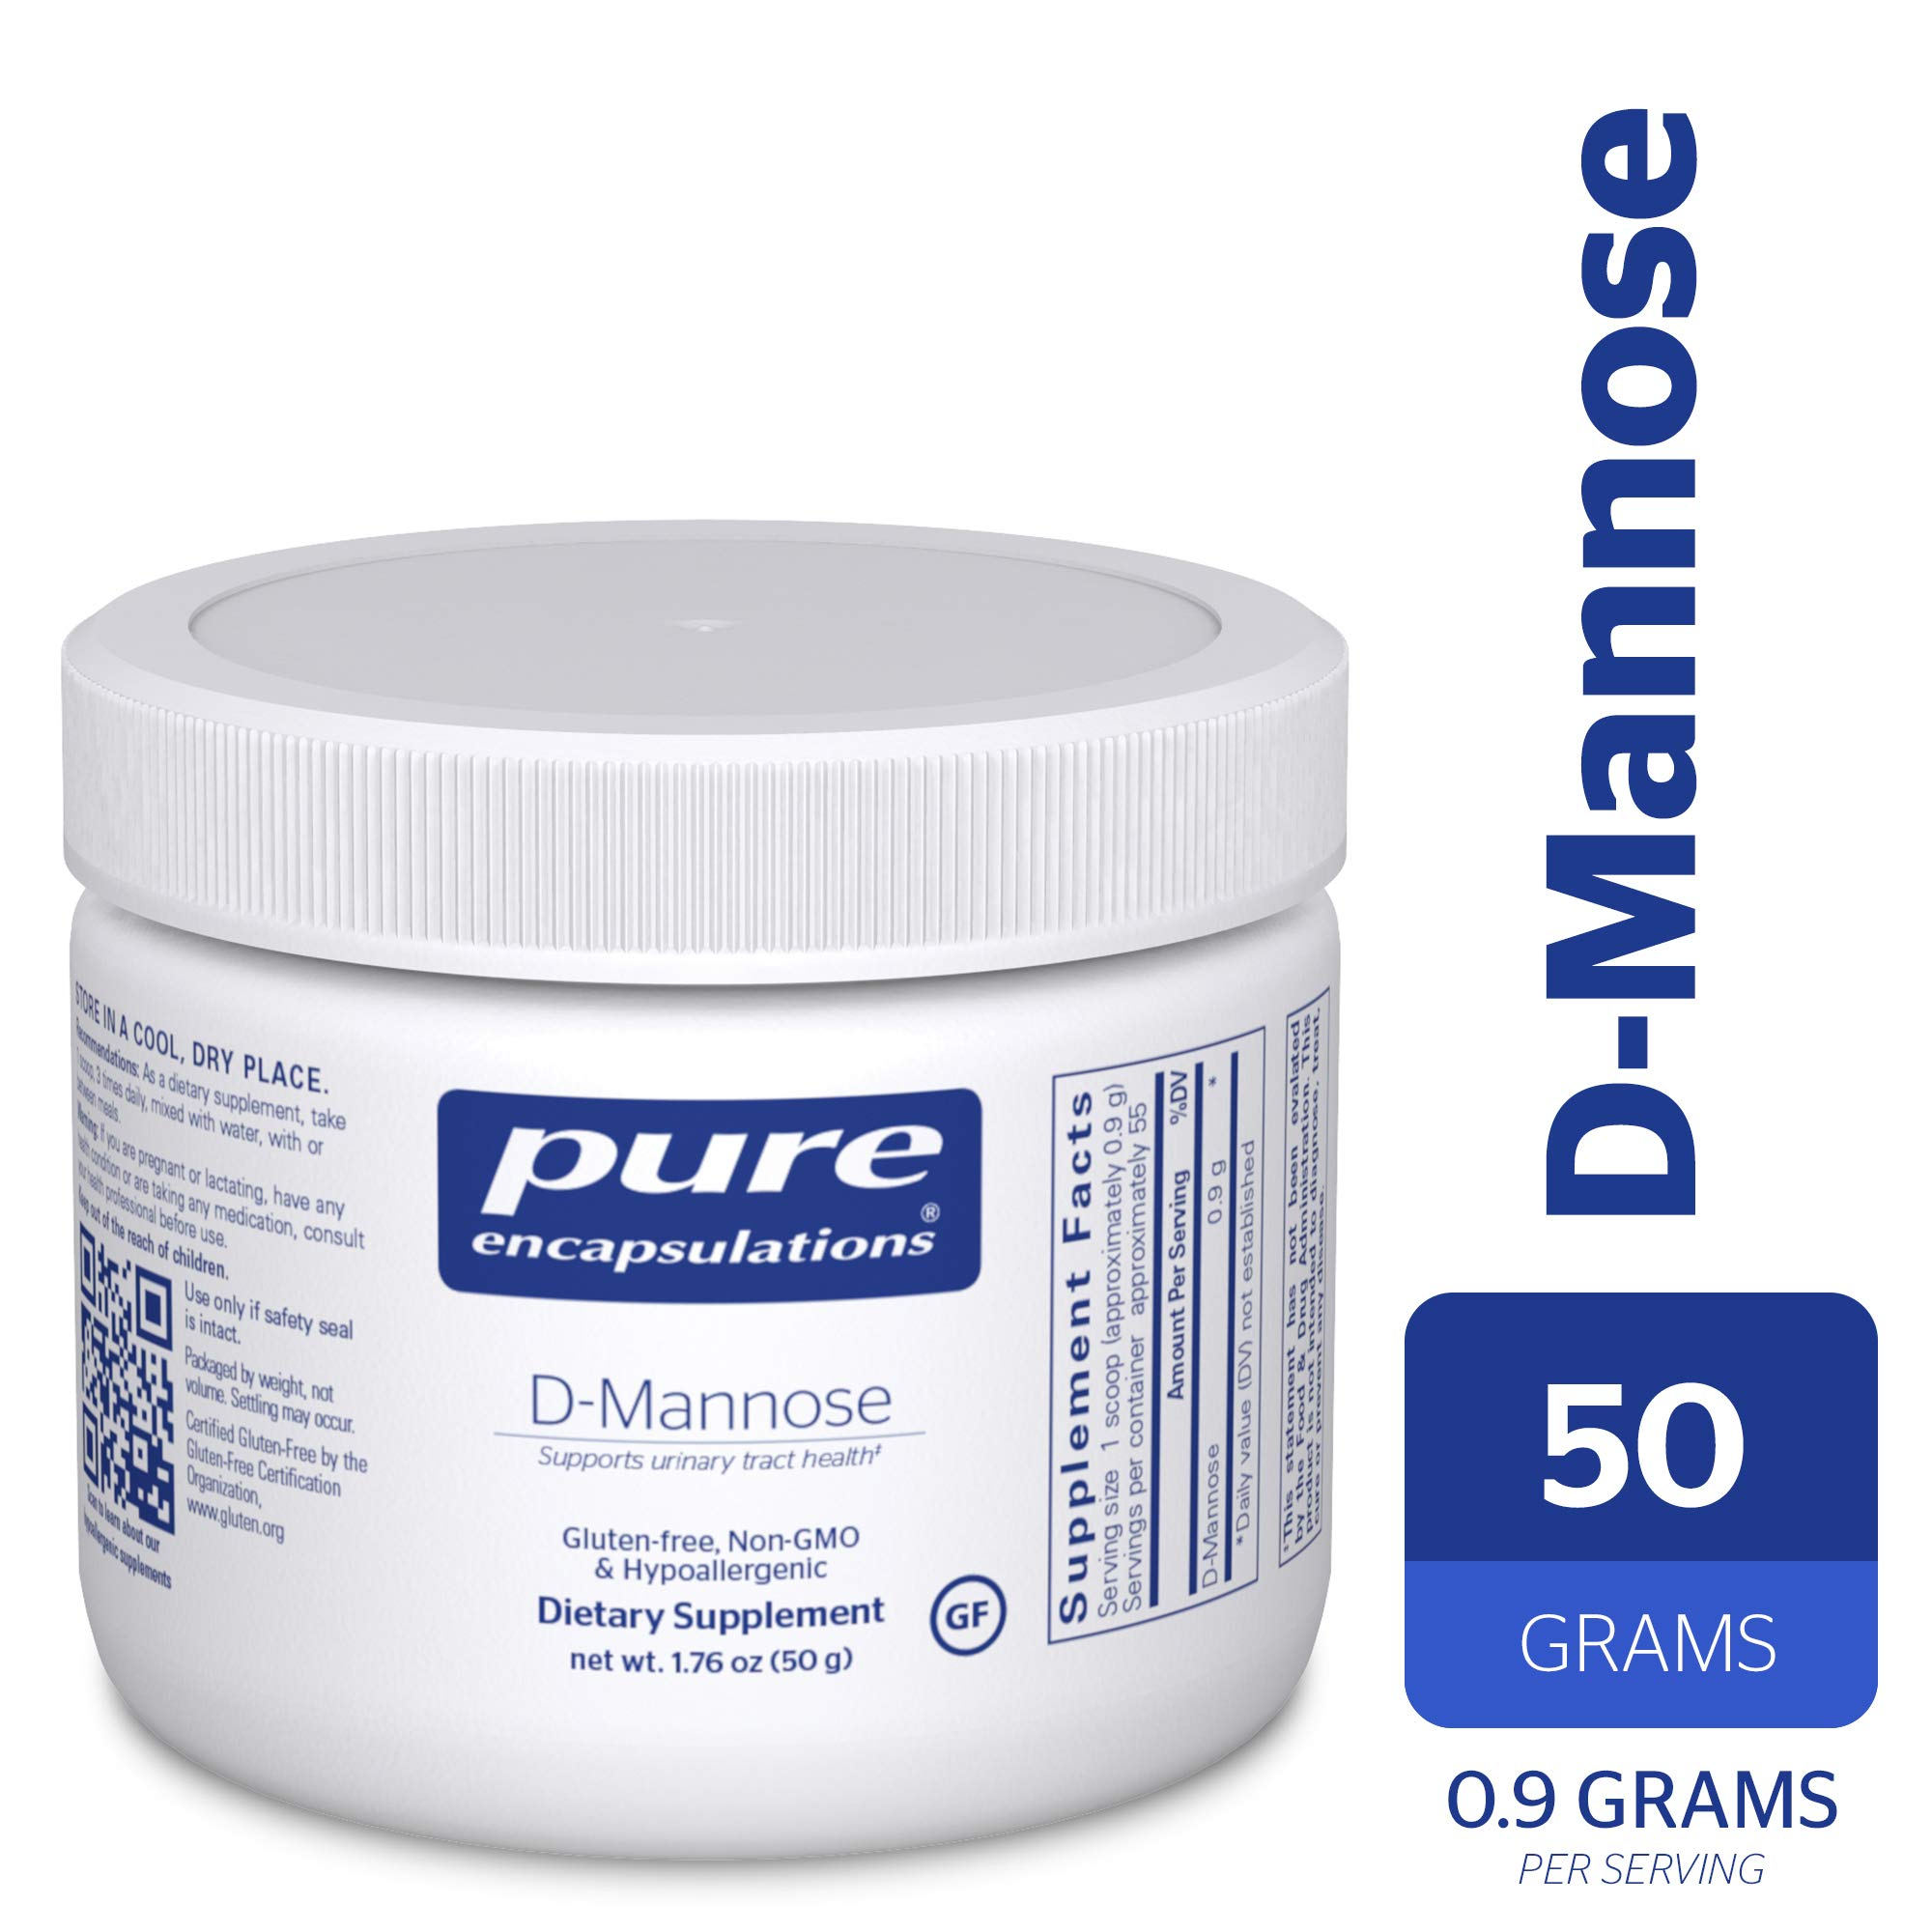 Pure Encapsulations - d-Mannose Powder - Hypoallergenic Supplement for Urinary Tract Support* - 50 Grams